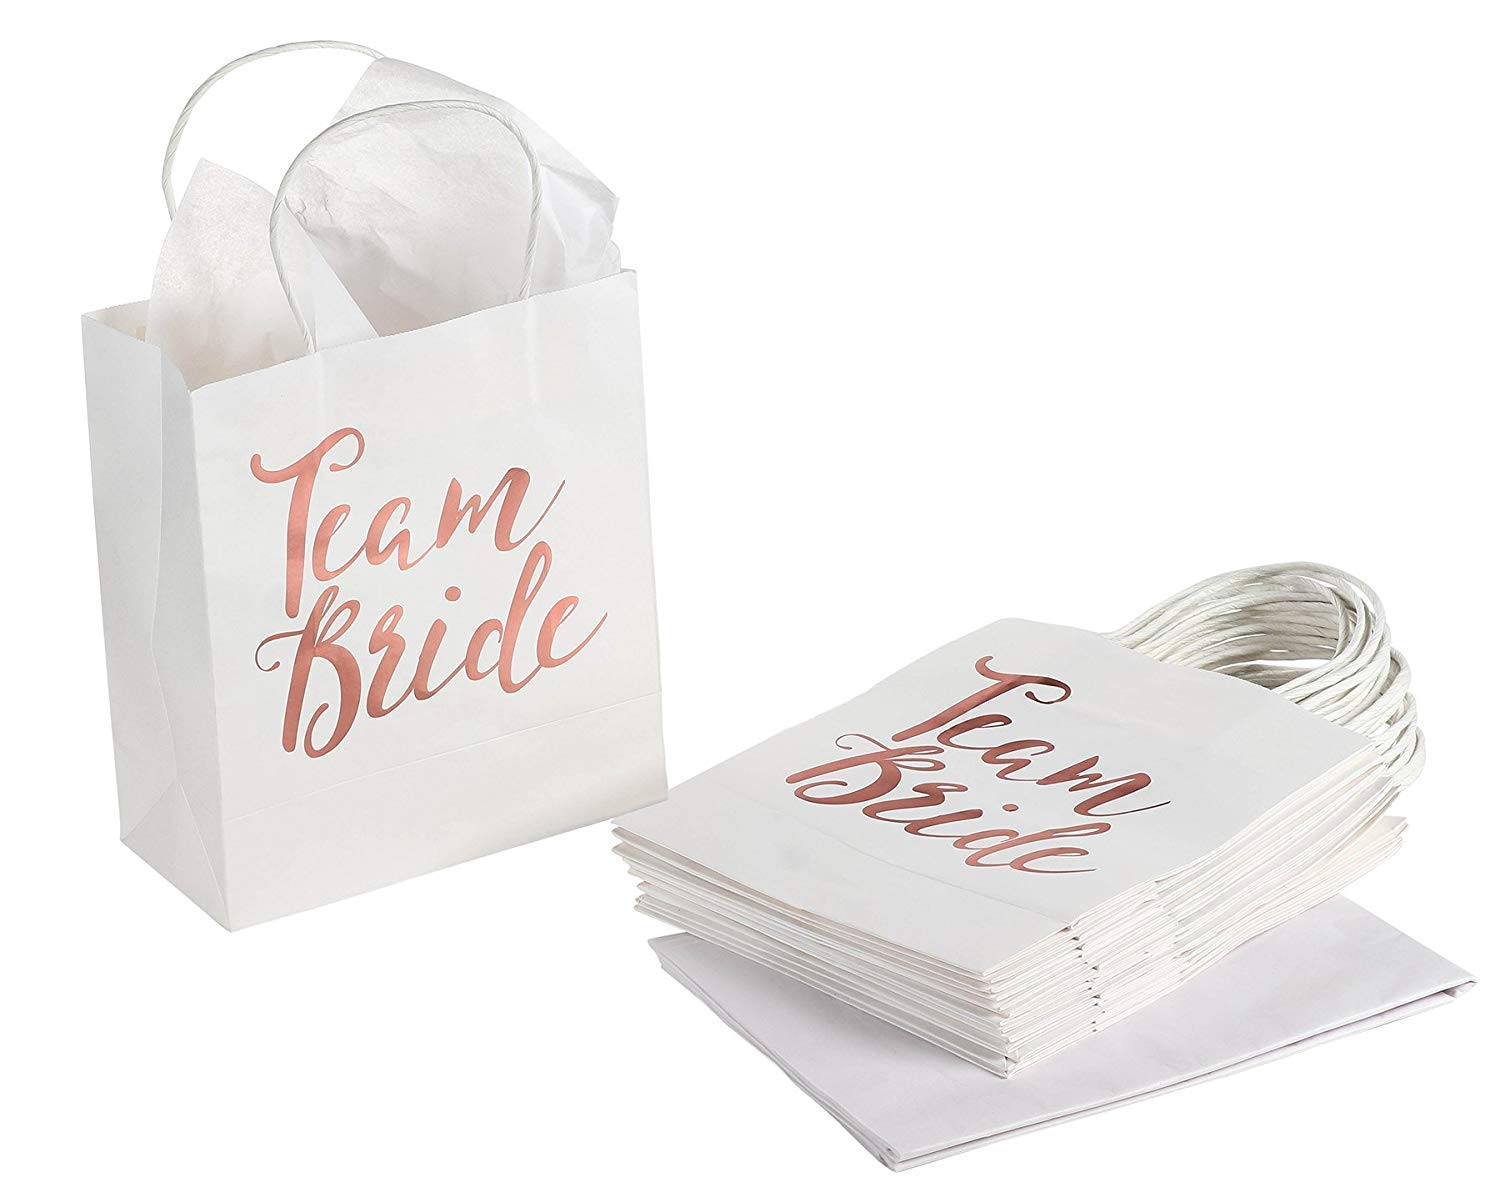 Amazon Com 15 Pack Bridesmaid Gift Bags Team Bride Rose Gold Foiled With Handle Includes Tissue Paper For Bridal Shower Bachelorette Party 8 X 9 Inches Home Kitchen